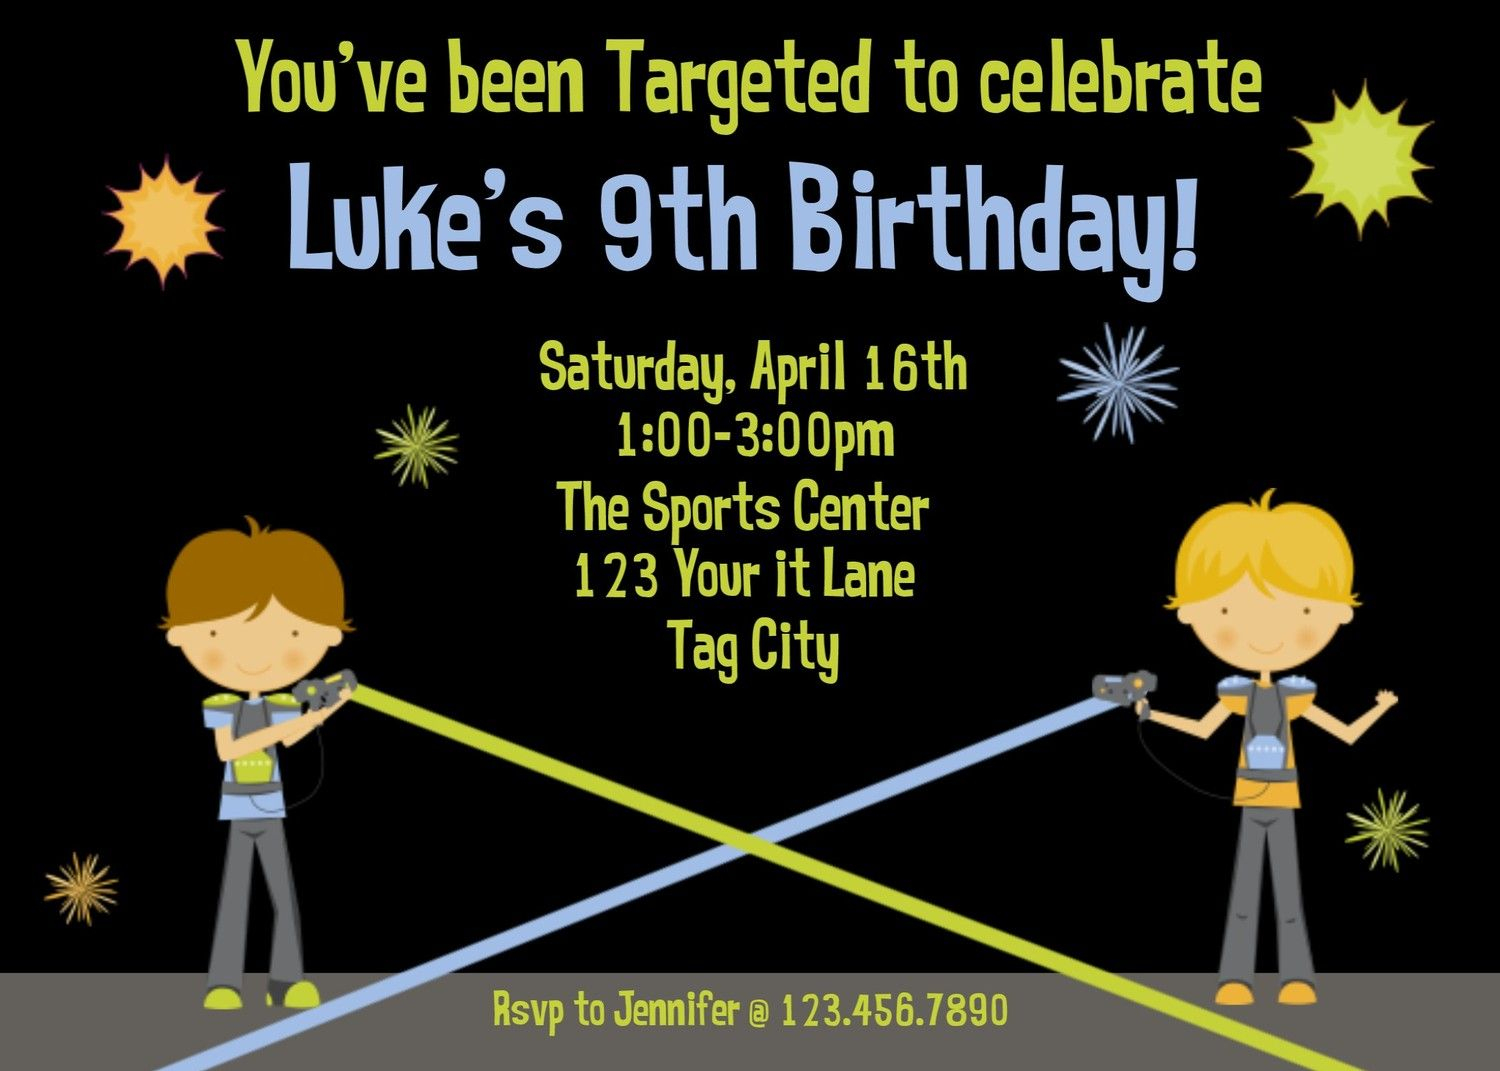 Laser Tag Birthday Invitation Laser Tagthetrendybutterfly - Free Printable Laser Tag Invitation Template